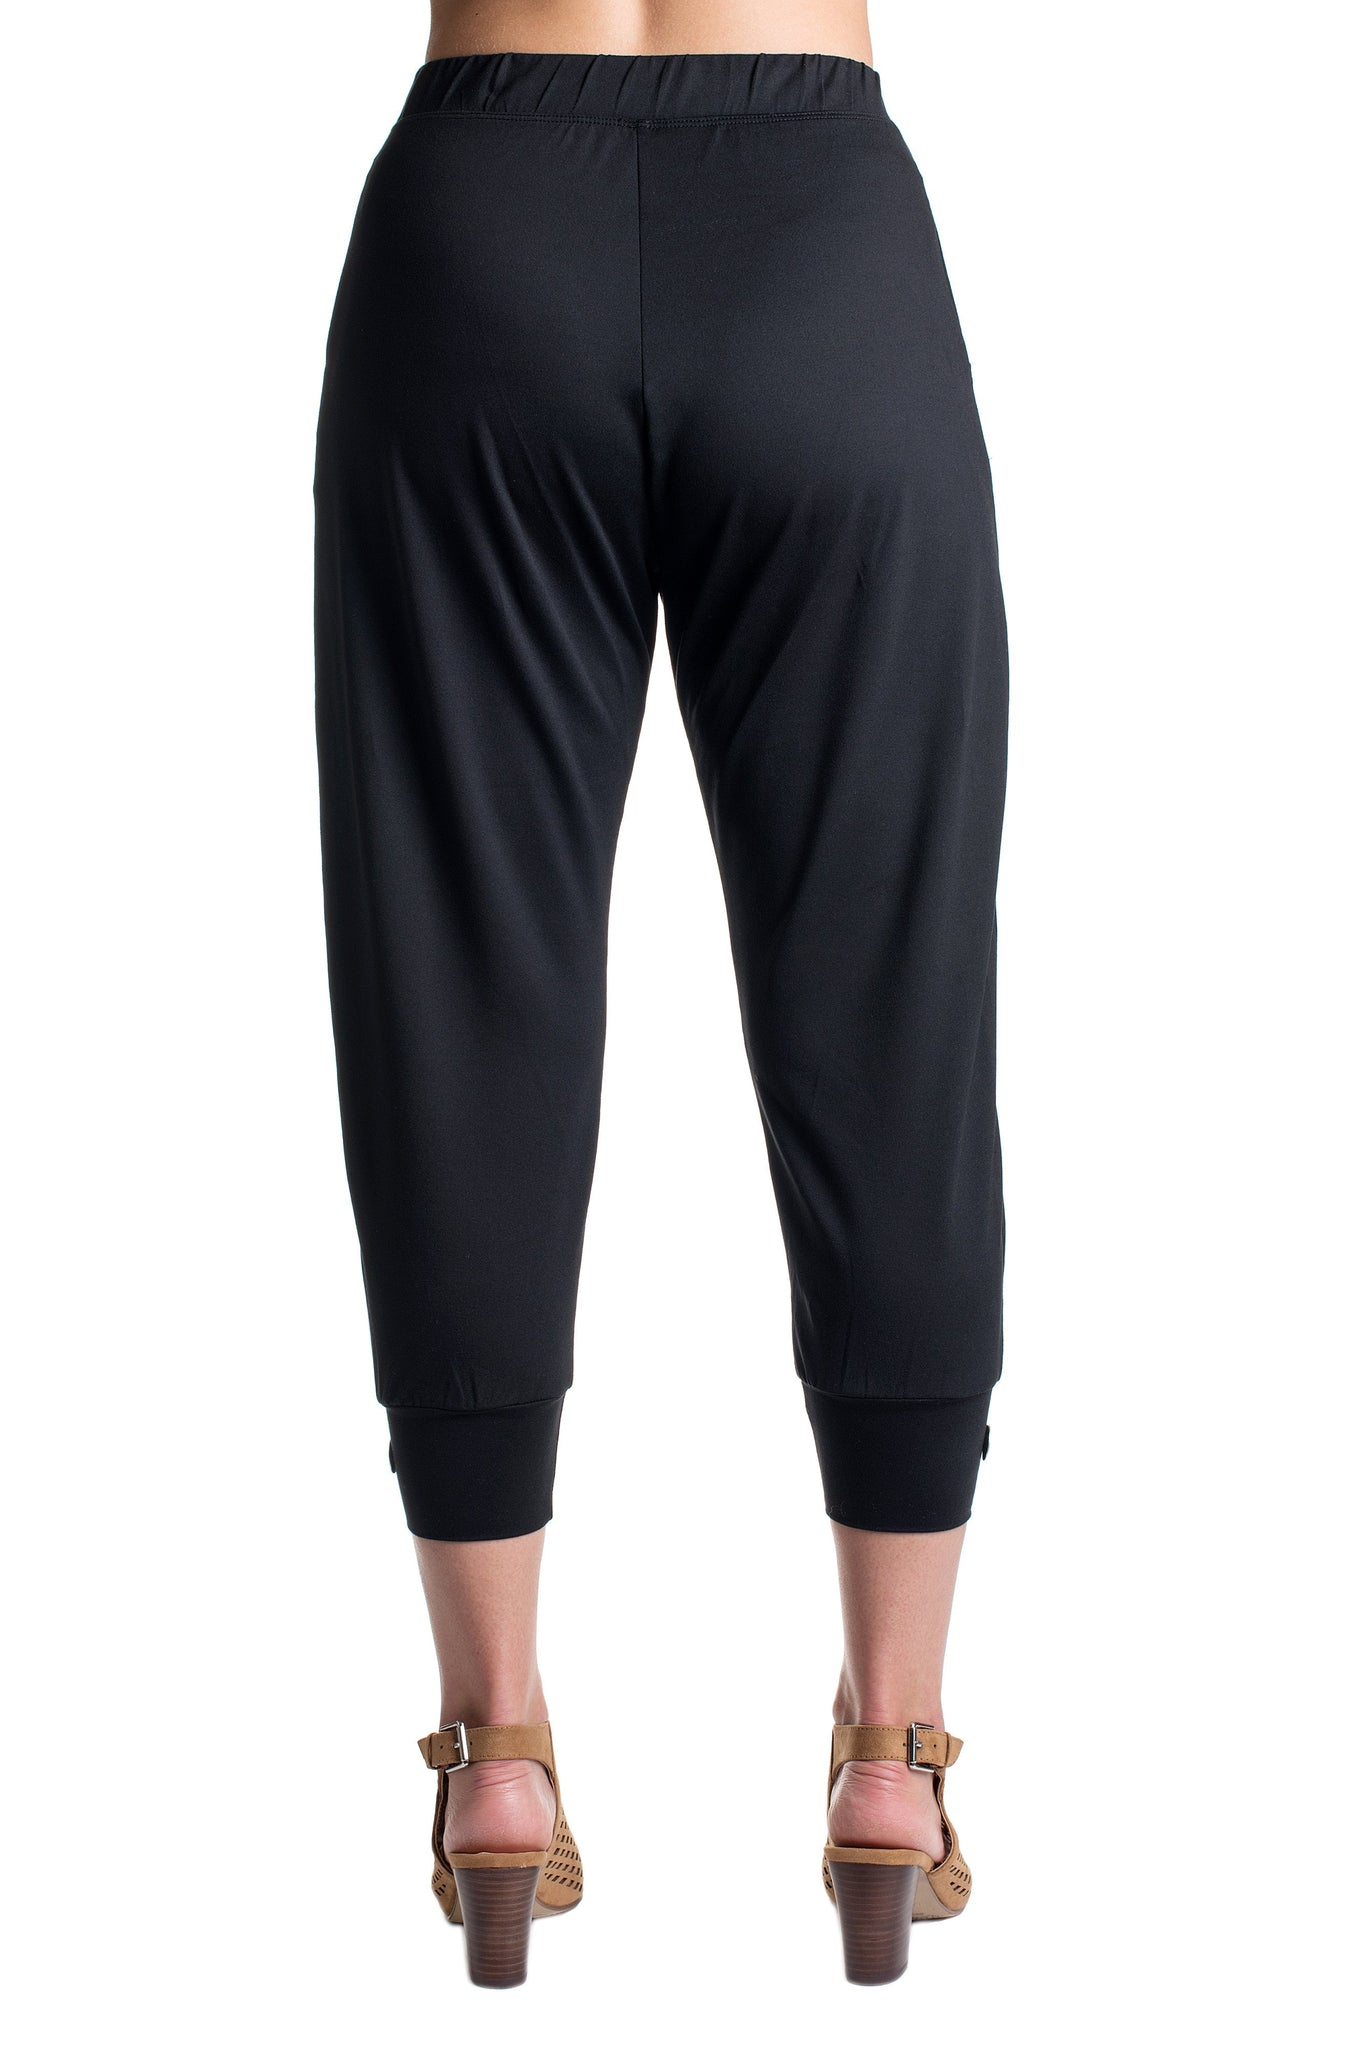 Slate Black Cropped Pants